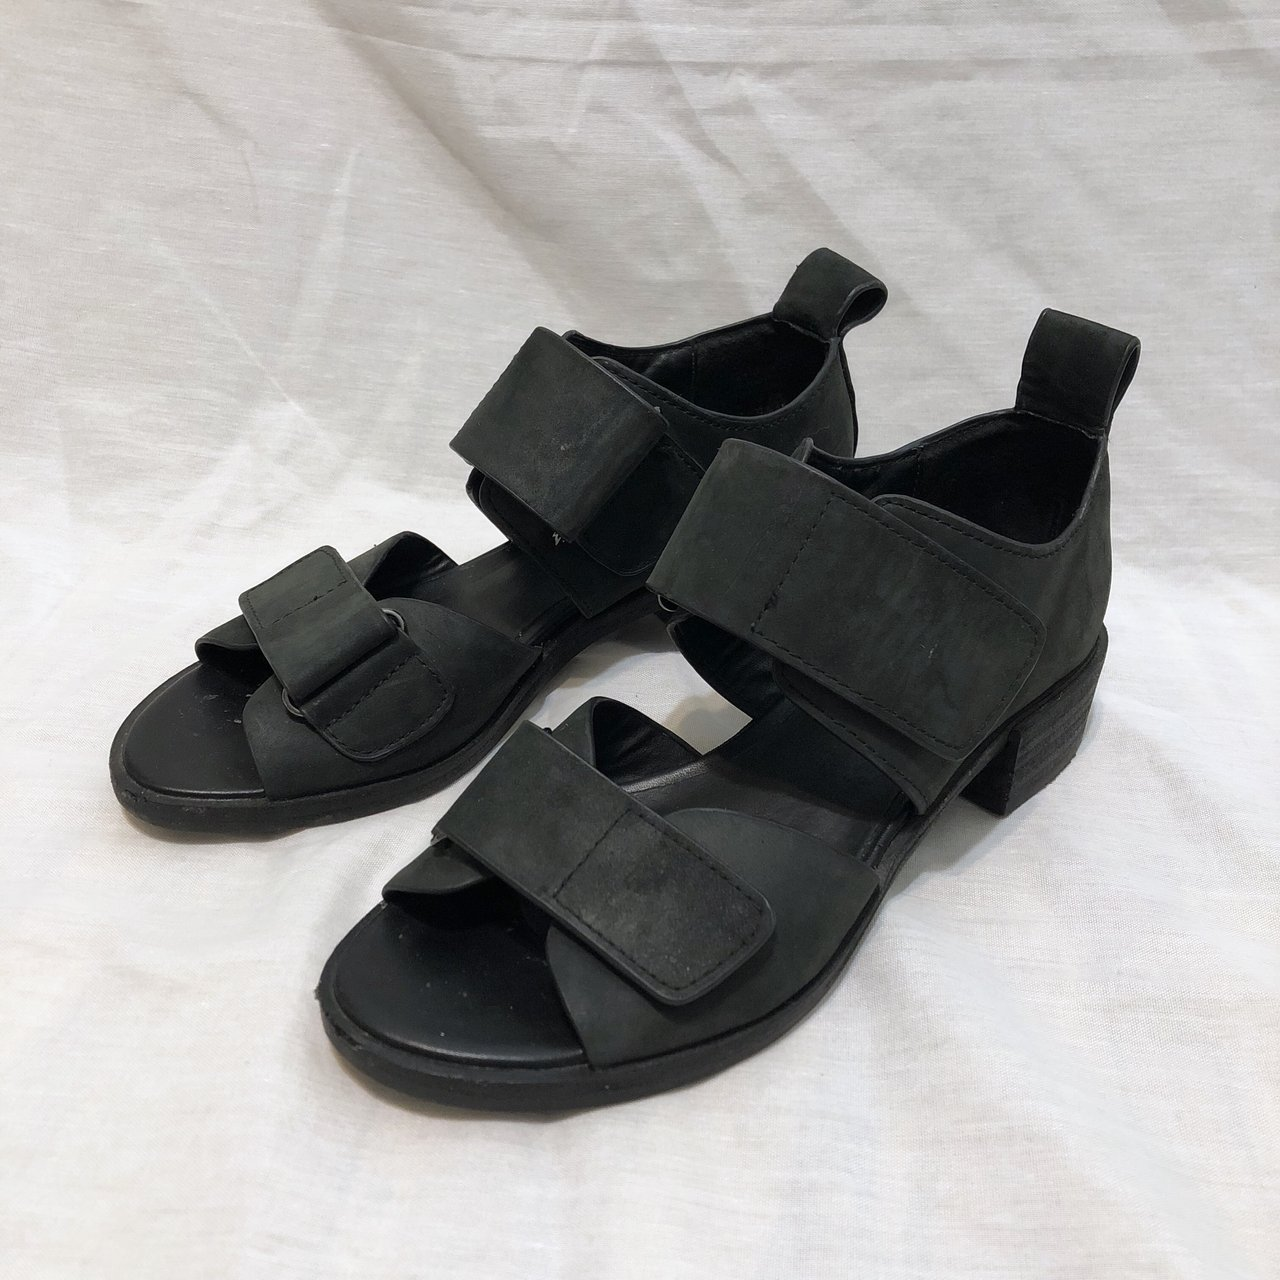 037729f0a88 Shellys London Janko is a chunky black leather sandal with a - Depop